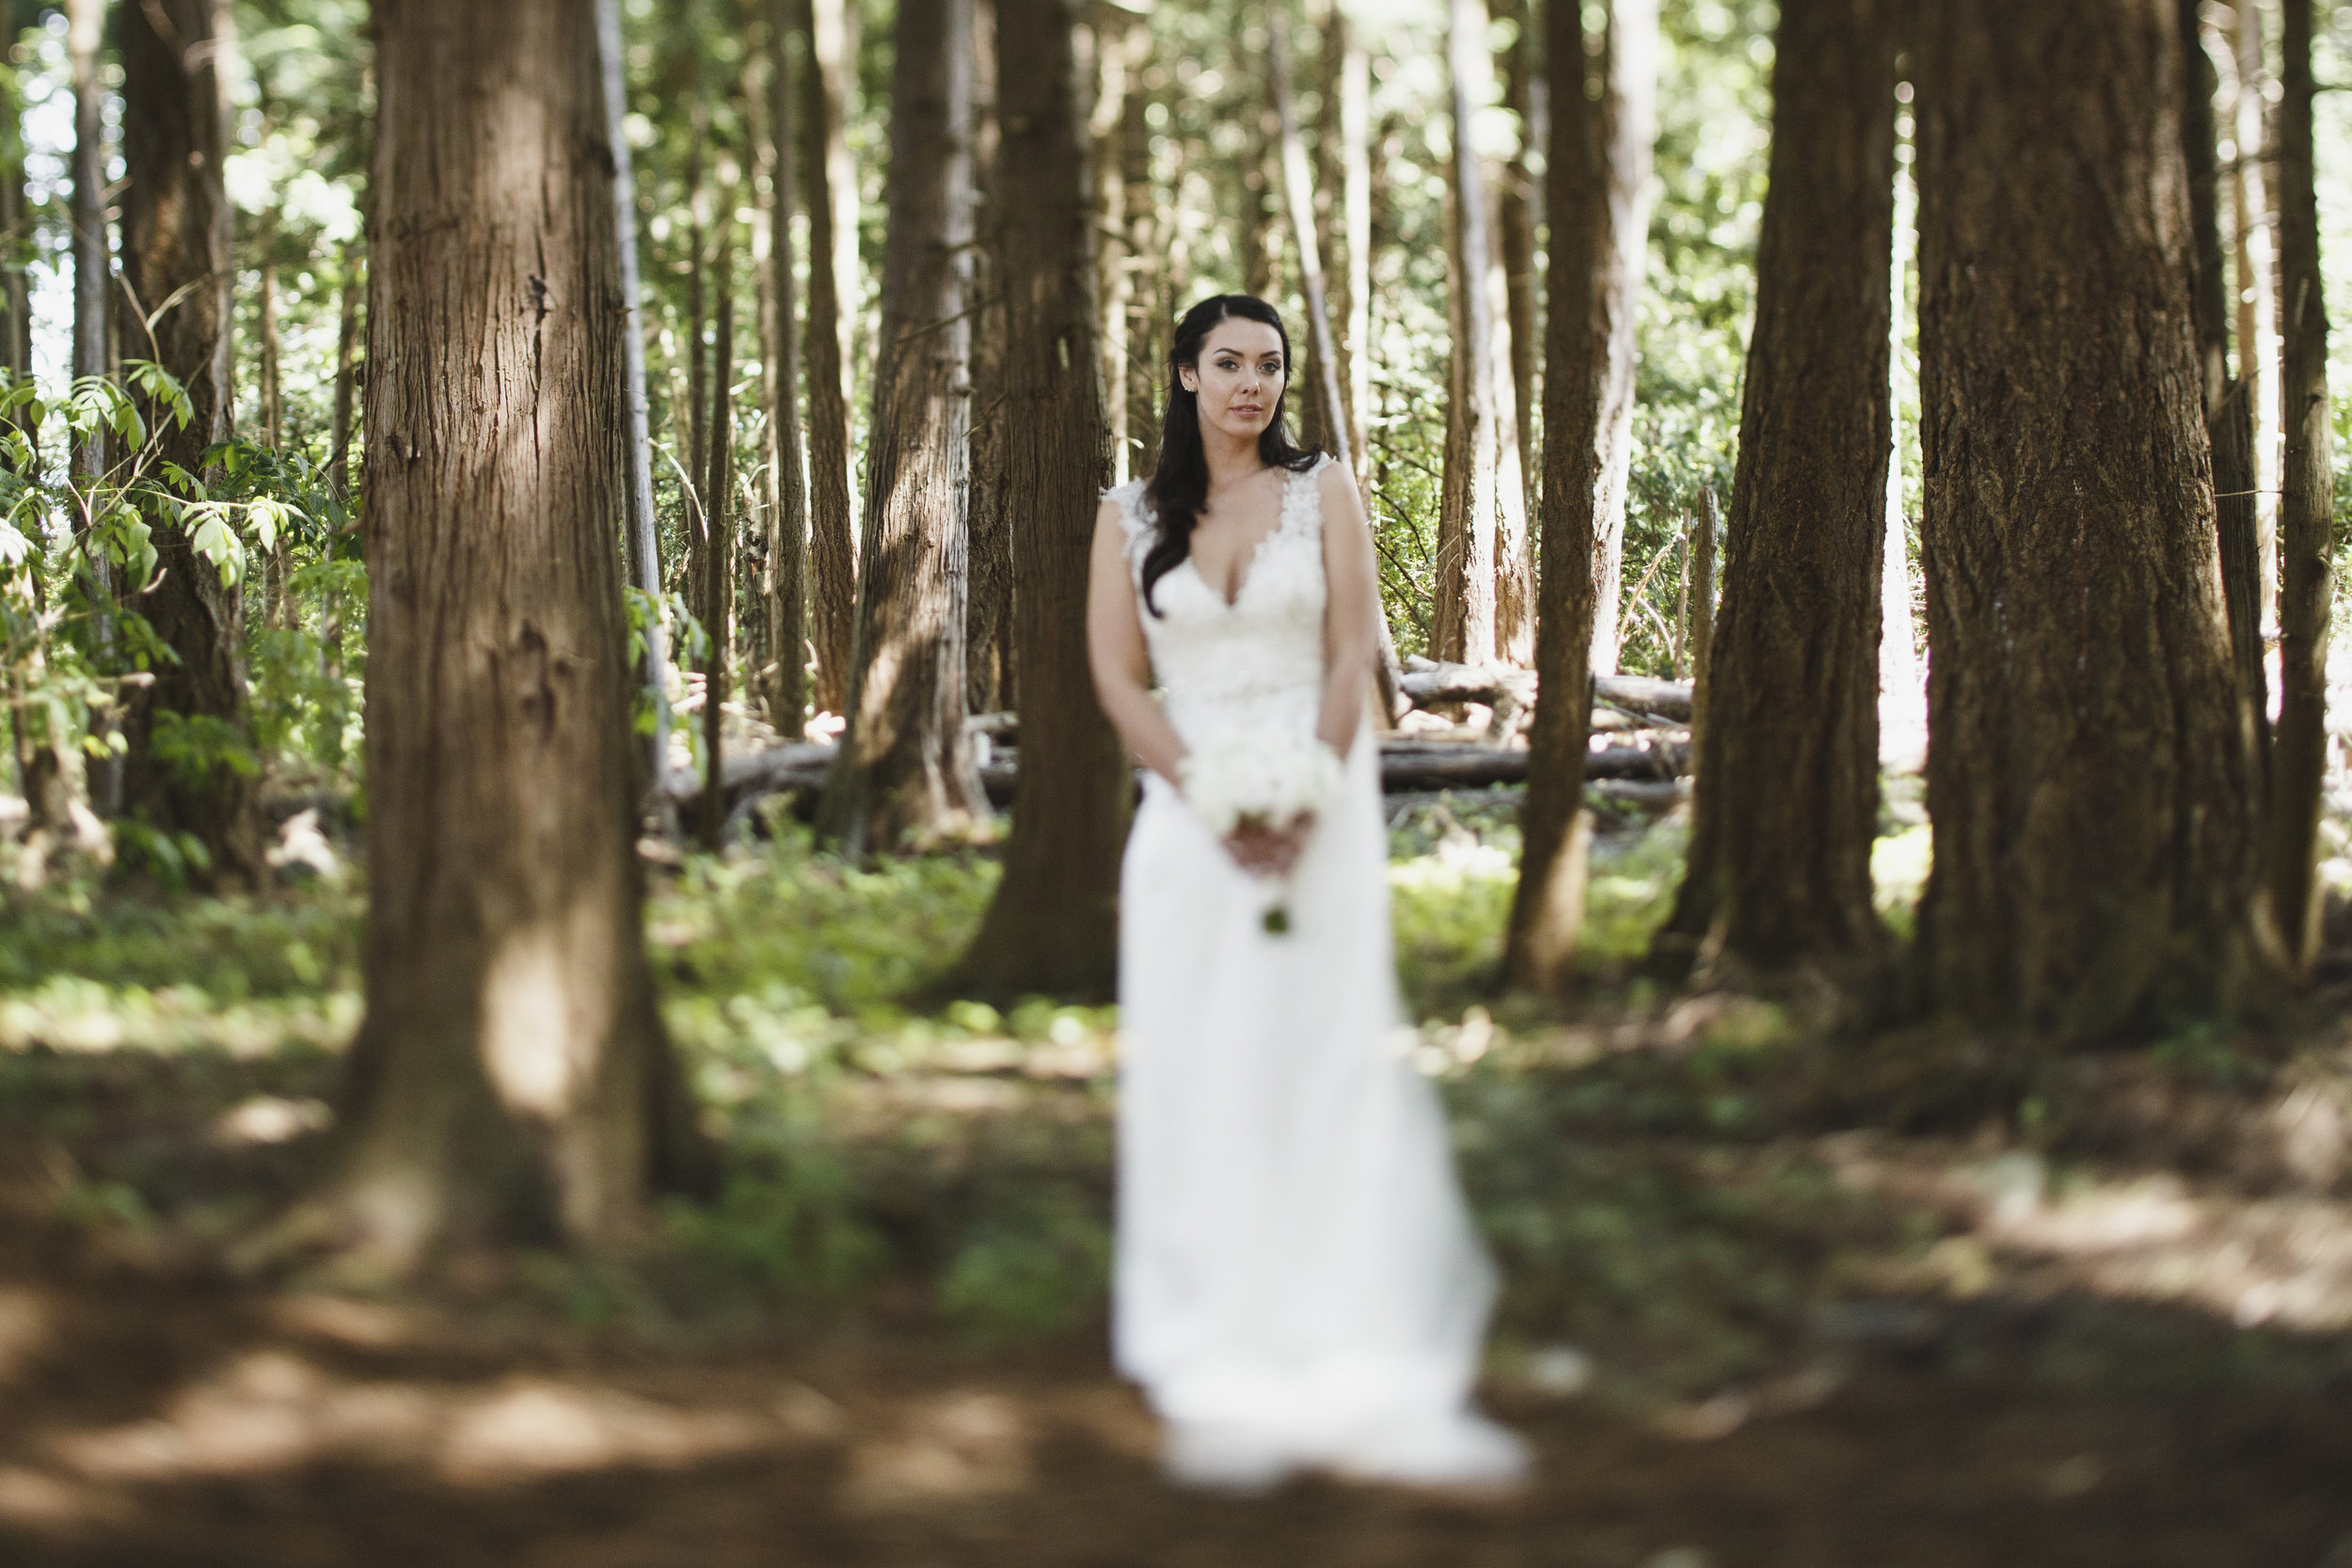 The bride in her wedding day Forest wedding Tofino Sea Cider Vancouver Island